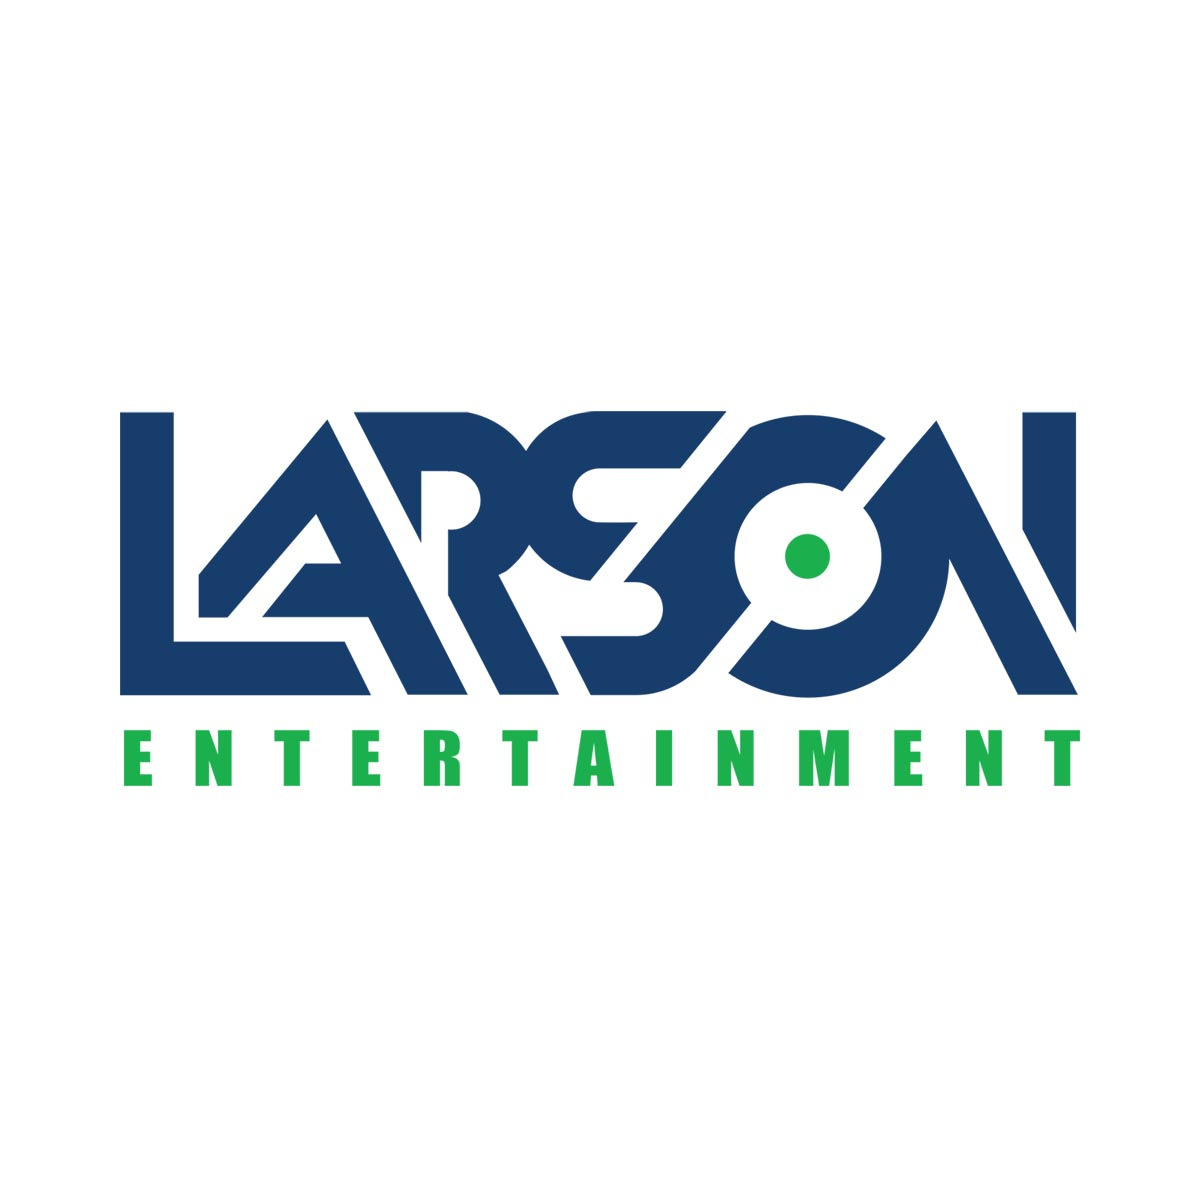 Larson Entertainment